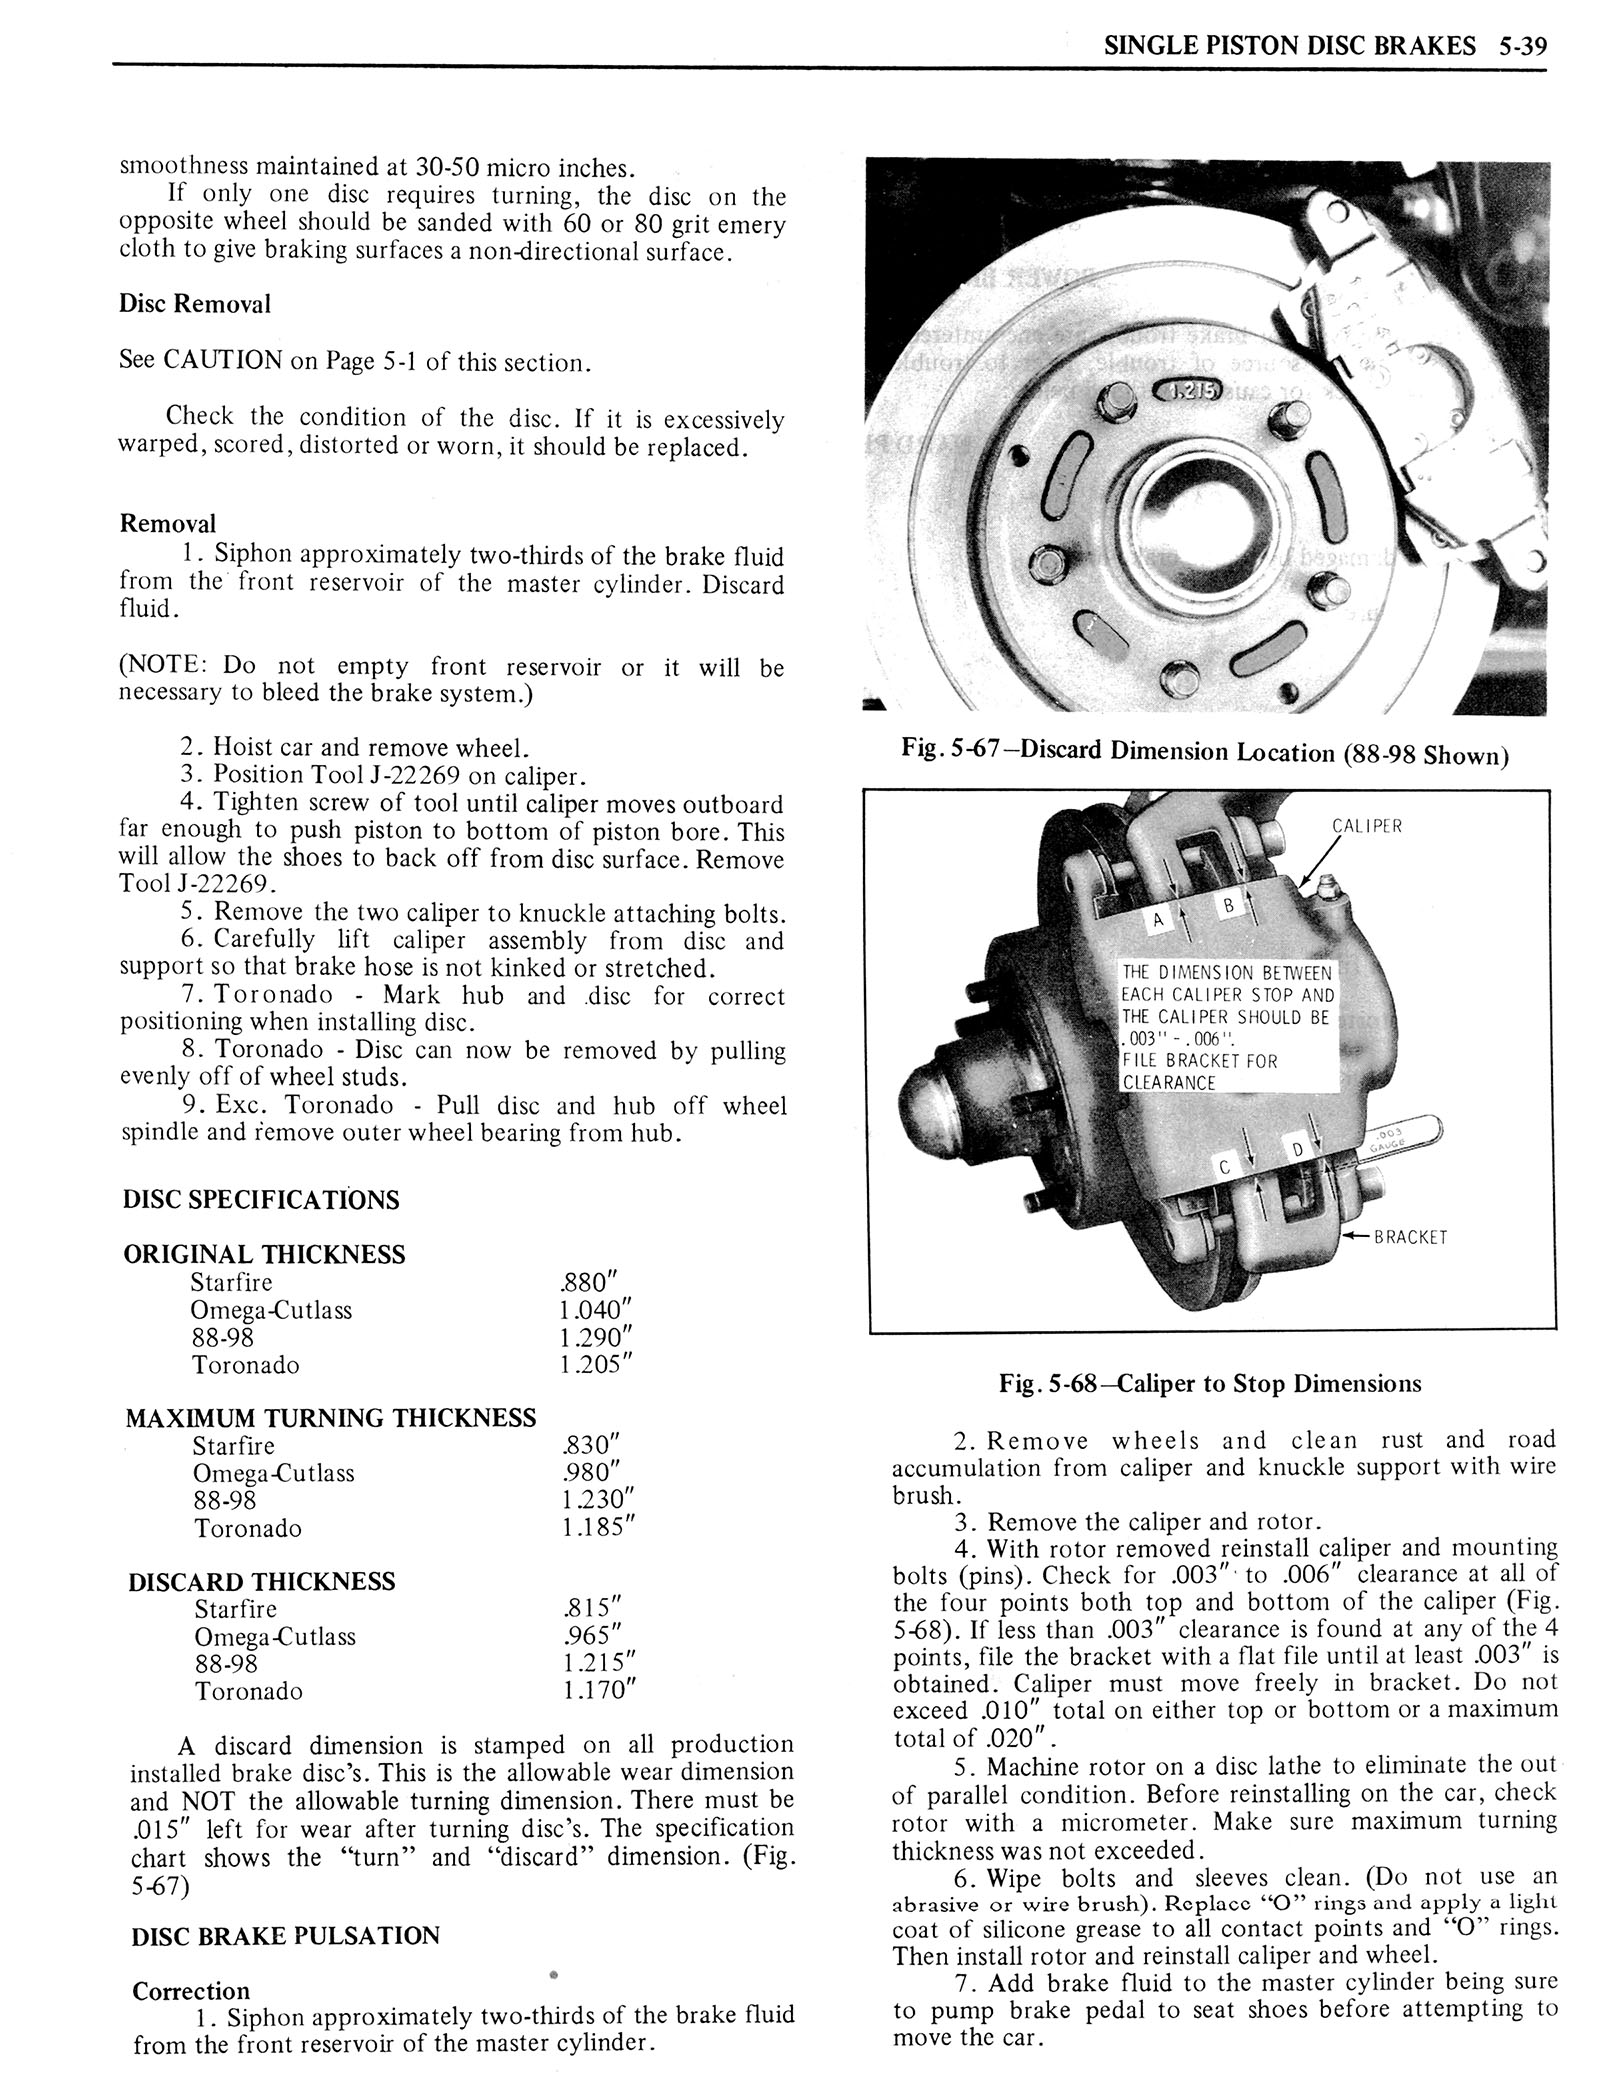 1976 Oldsmobile Service Manual page 368 of 1390